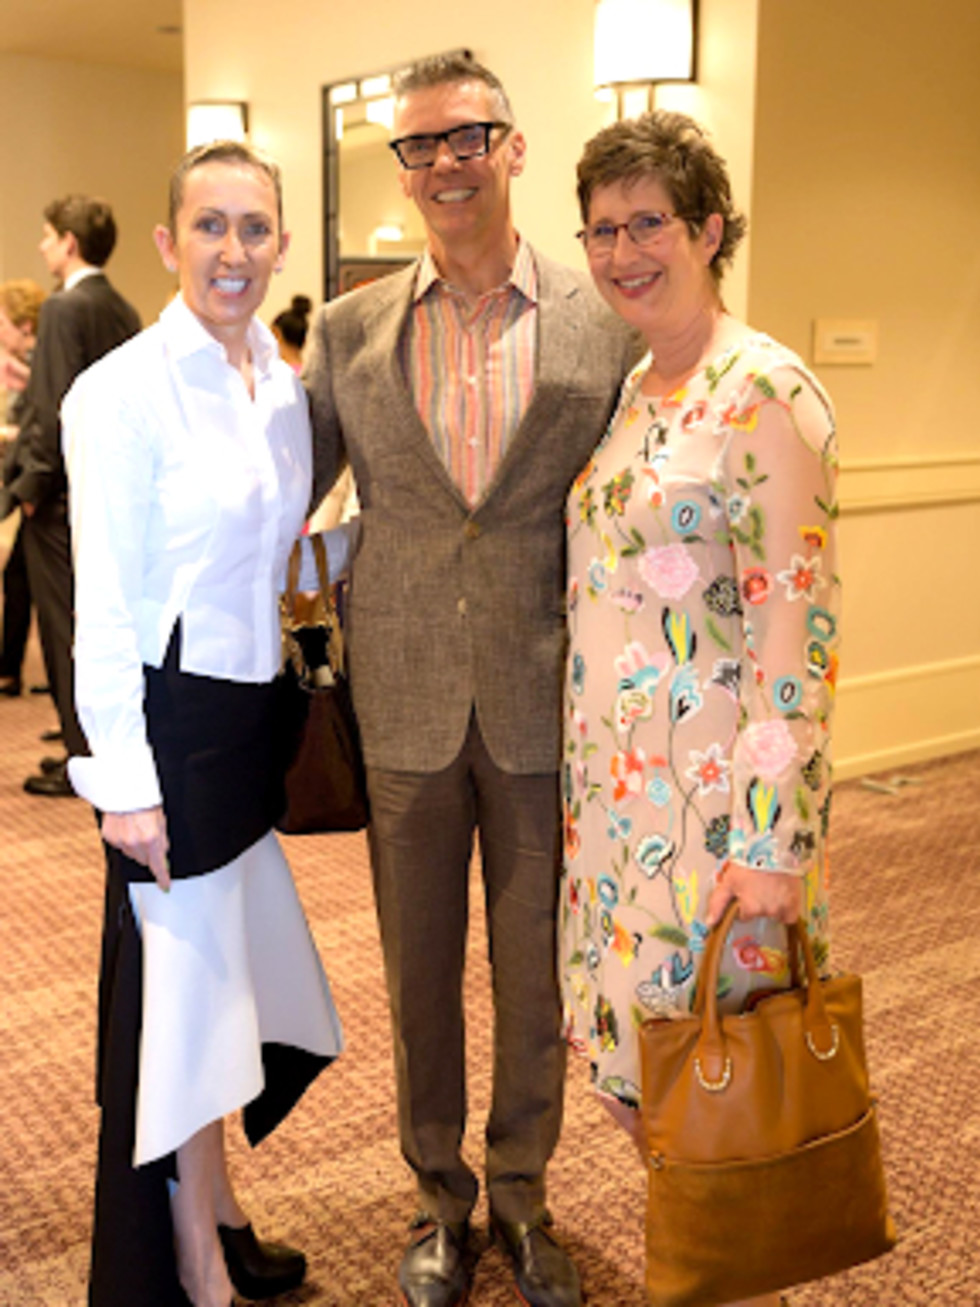 The Center luncheon Evelyn Maclean-Quick, Steve Quick, and Ashley Kress